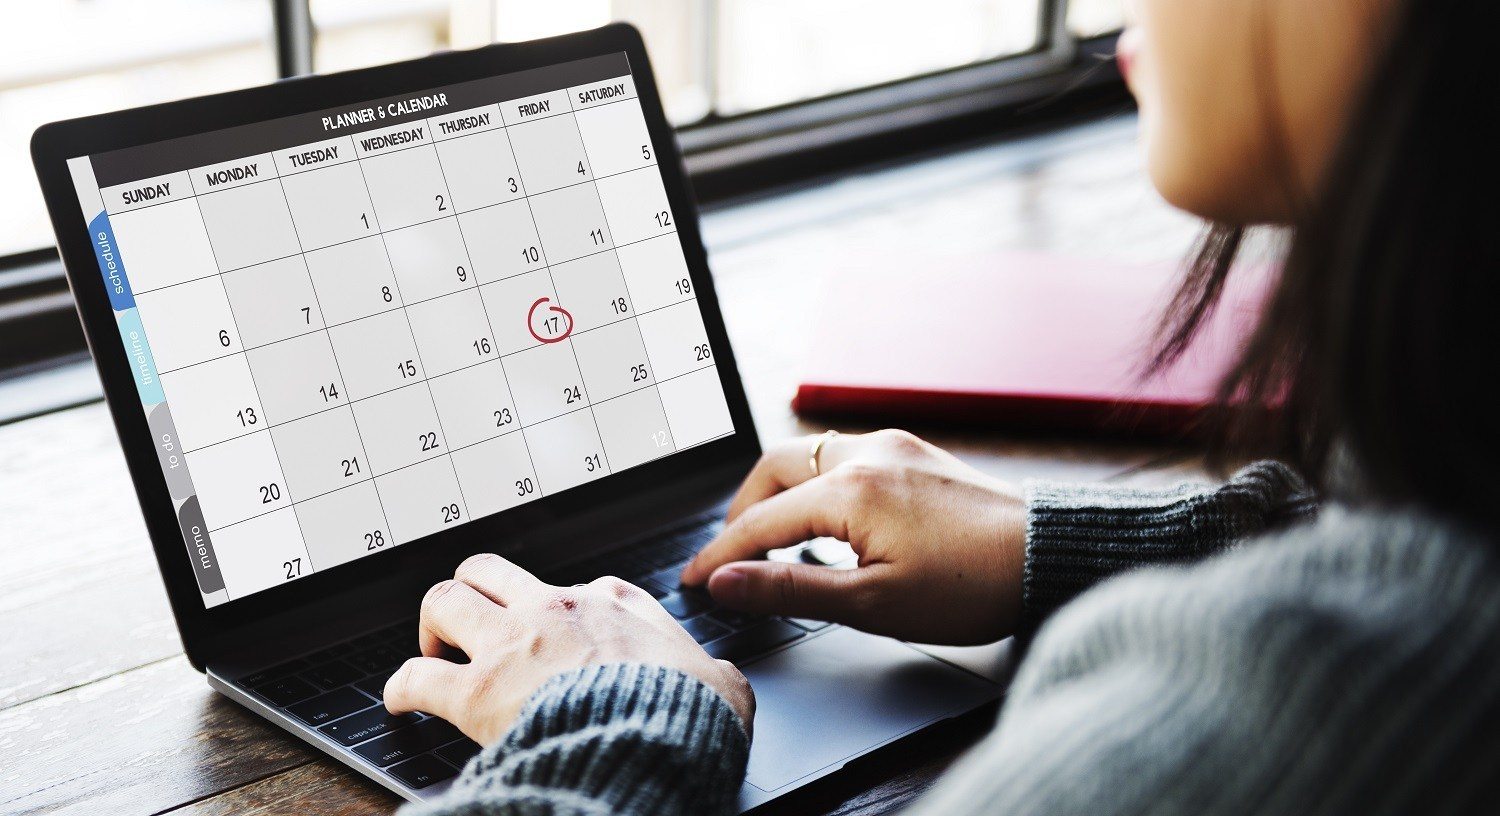 A woman using a calendar on her laptop